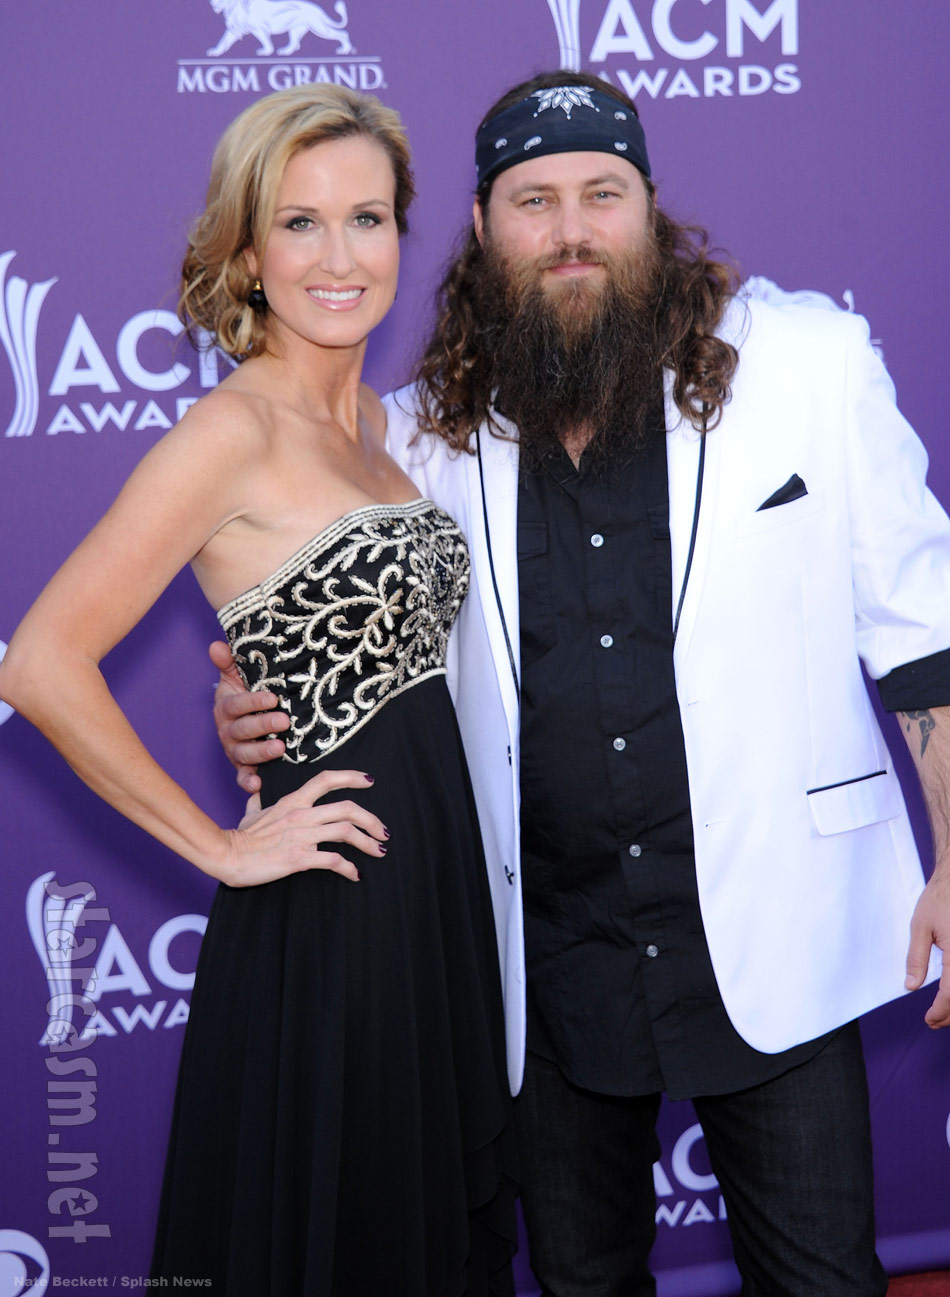 Korie Robertson shines on the 2013 ACM Awards red carpet